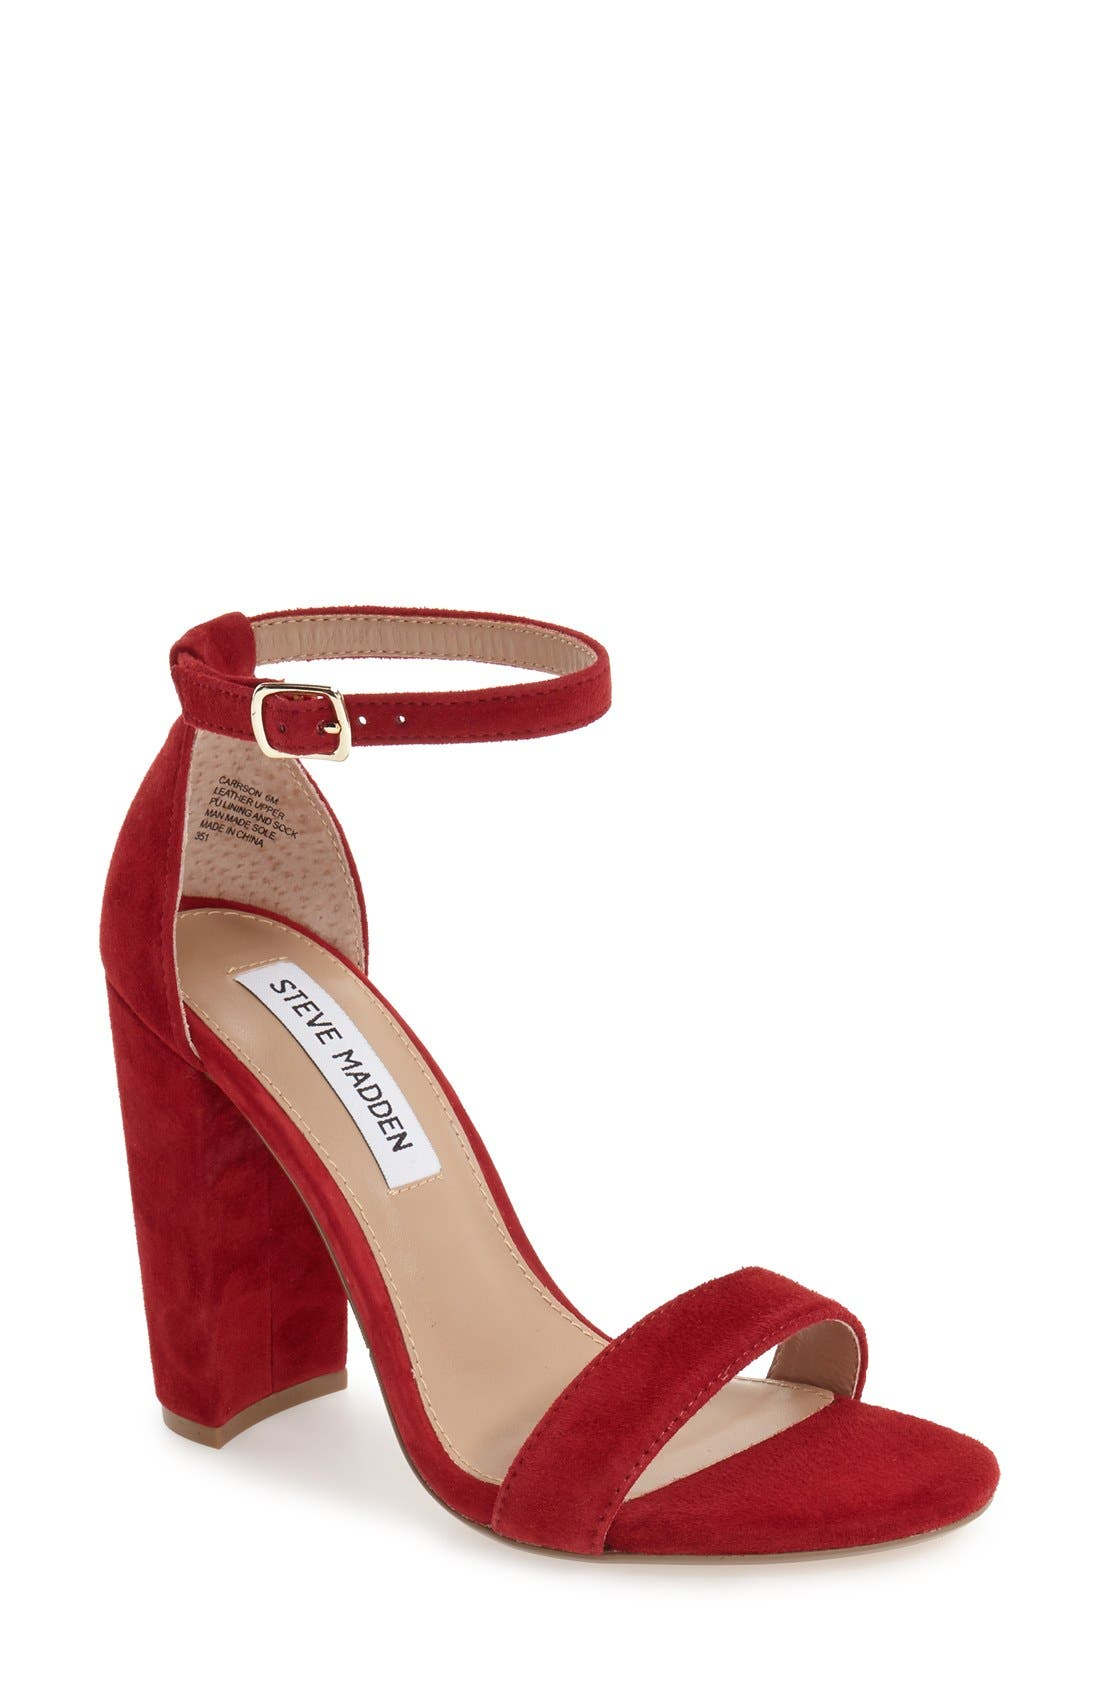 b42cc203421 Steve Madden Wedding Shop